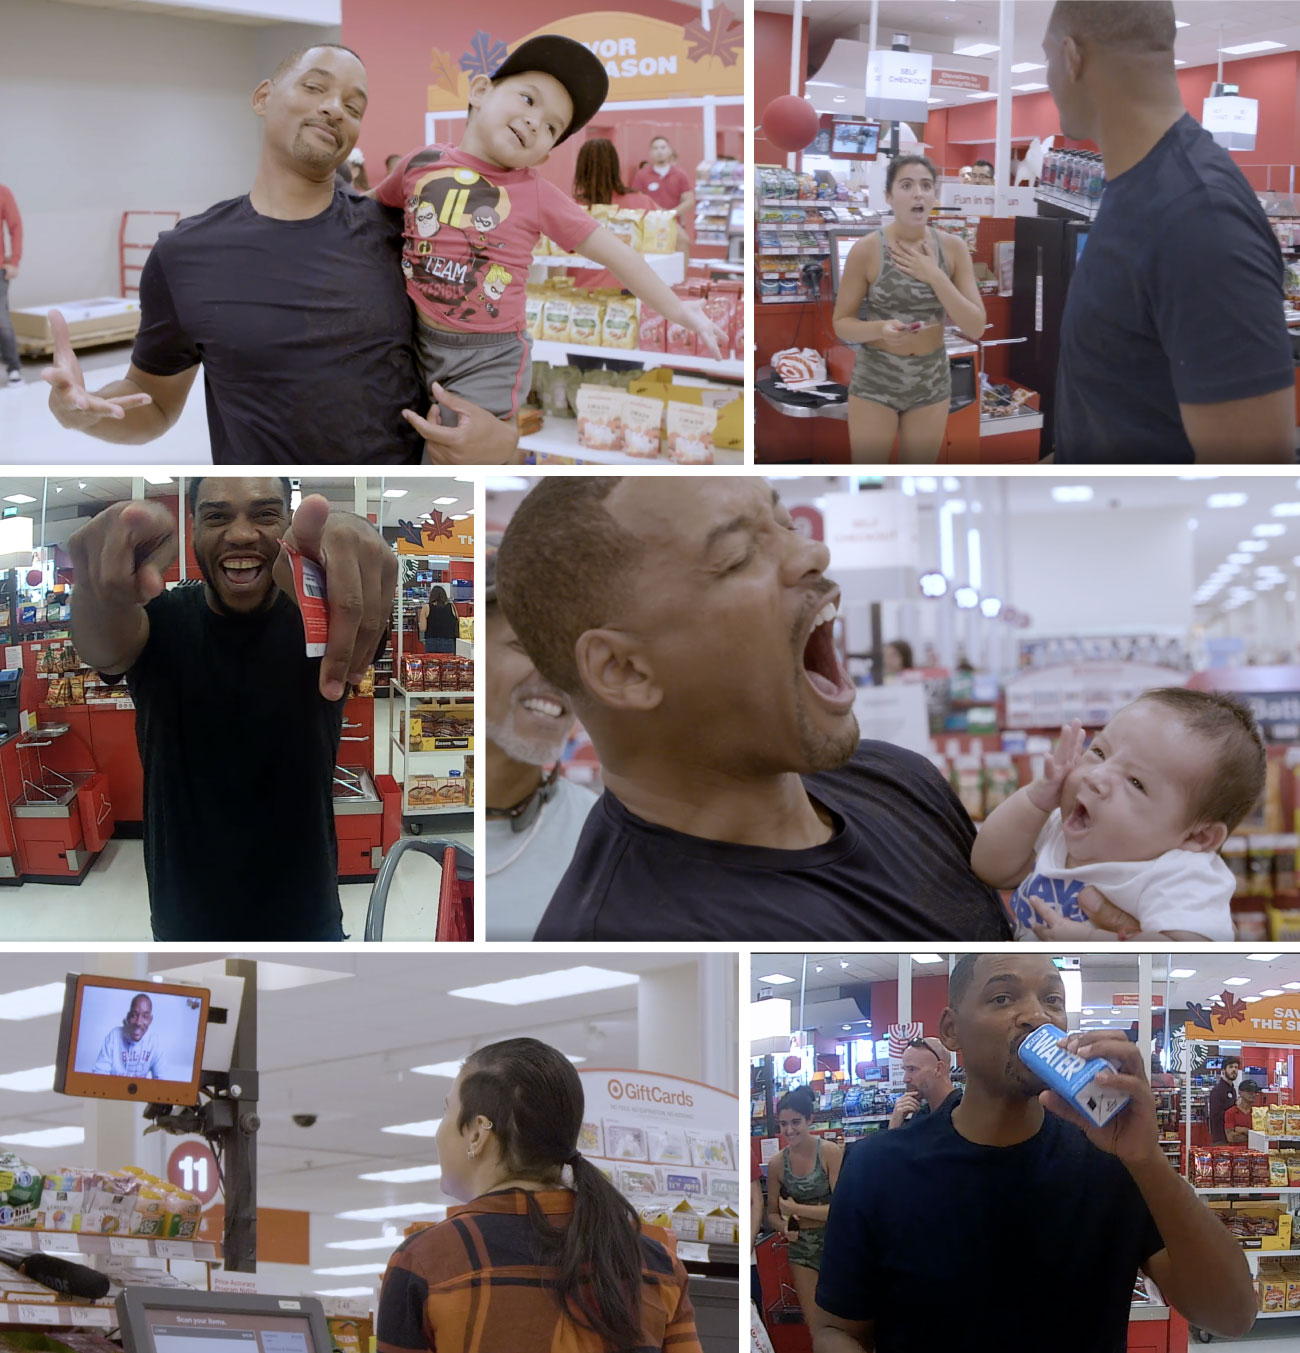 A collage of images showing Will Smith surprising and interacting with Target guests